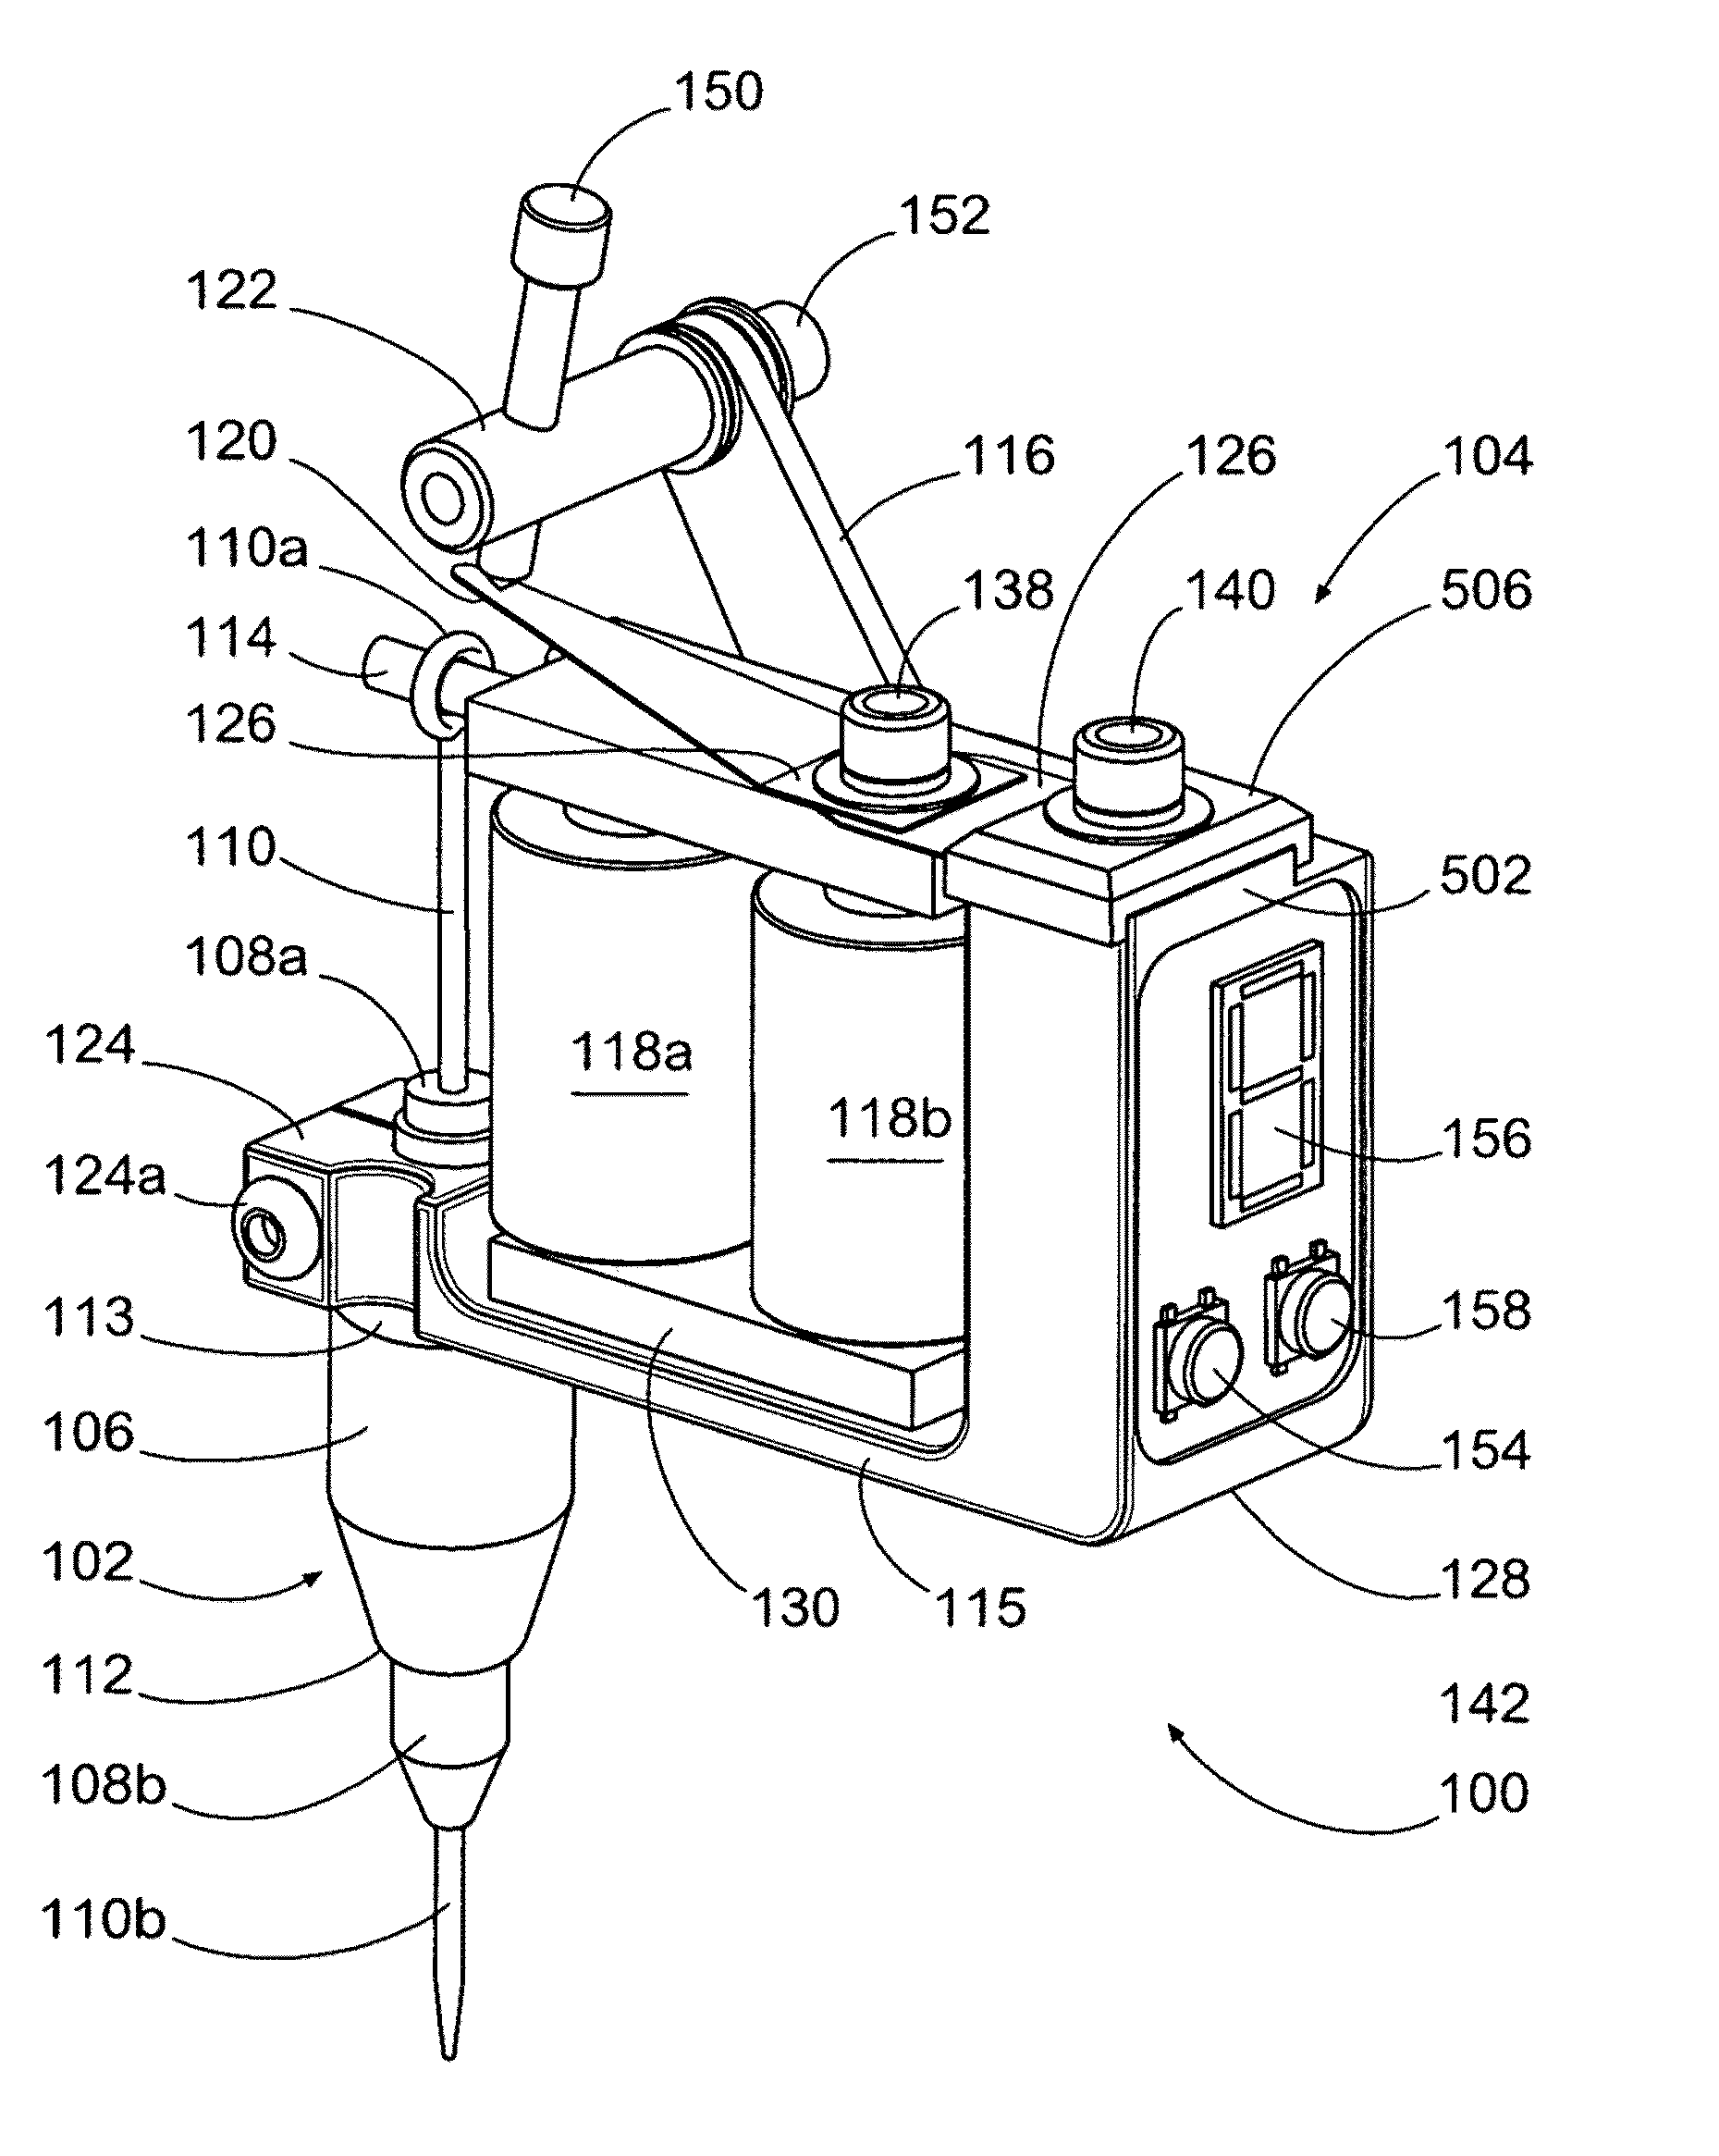 patent us20110288575 - wireless tattoo applicator system